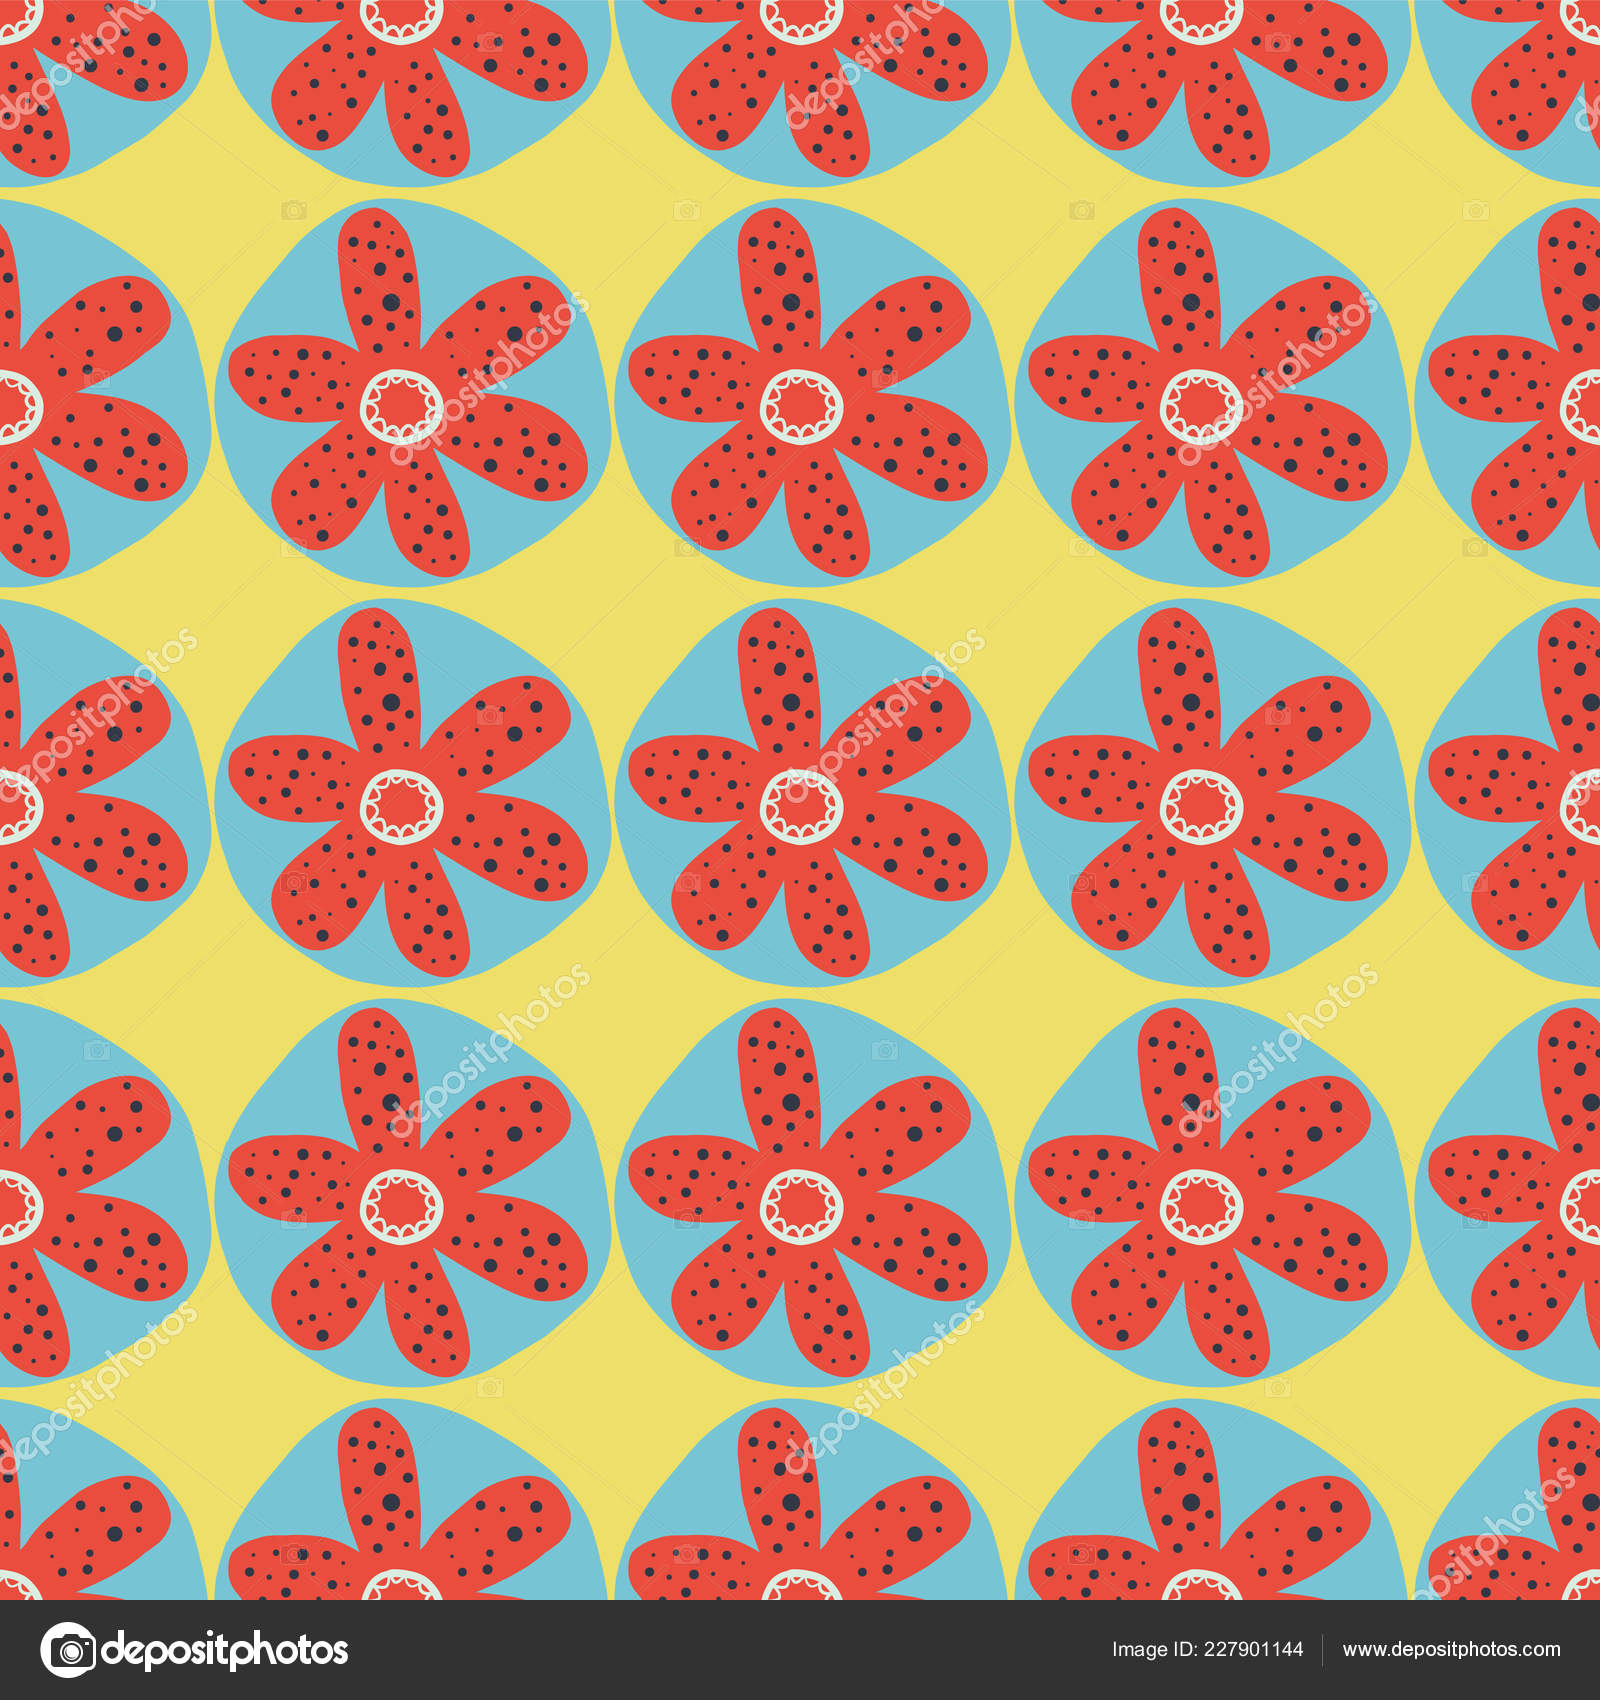 Retro Flowers Seamless Vector Background 1960s 1970s Floral Design